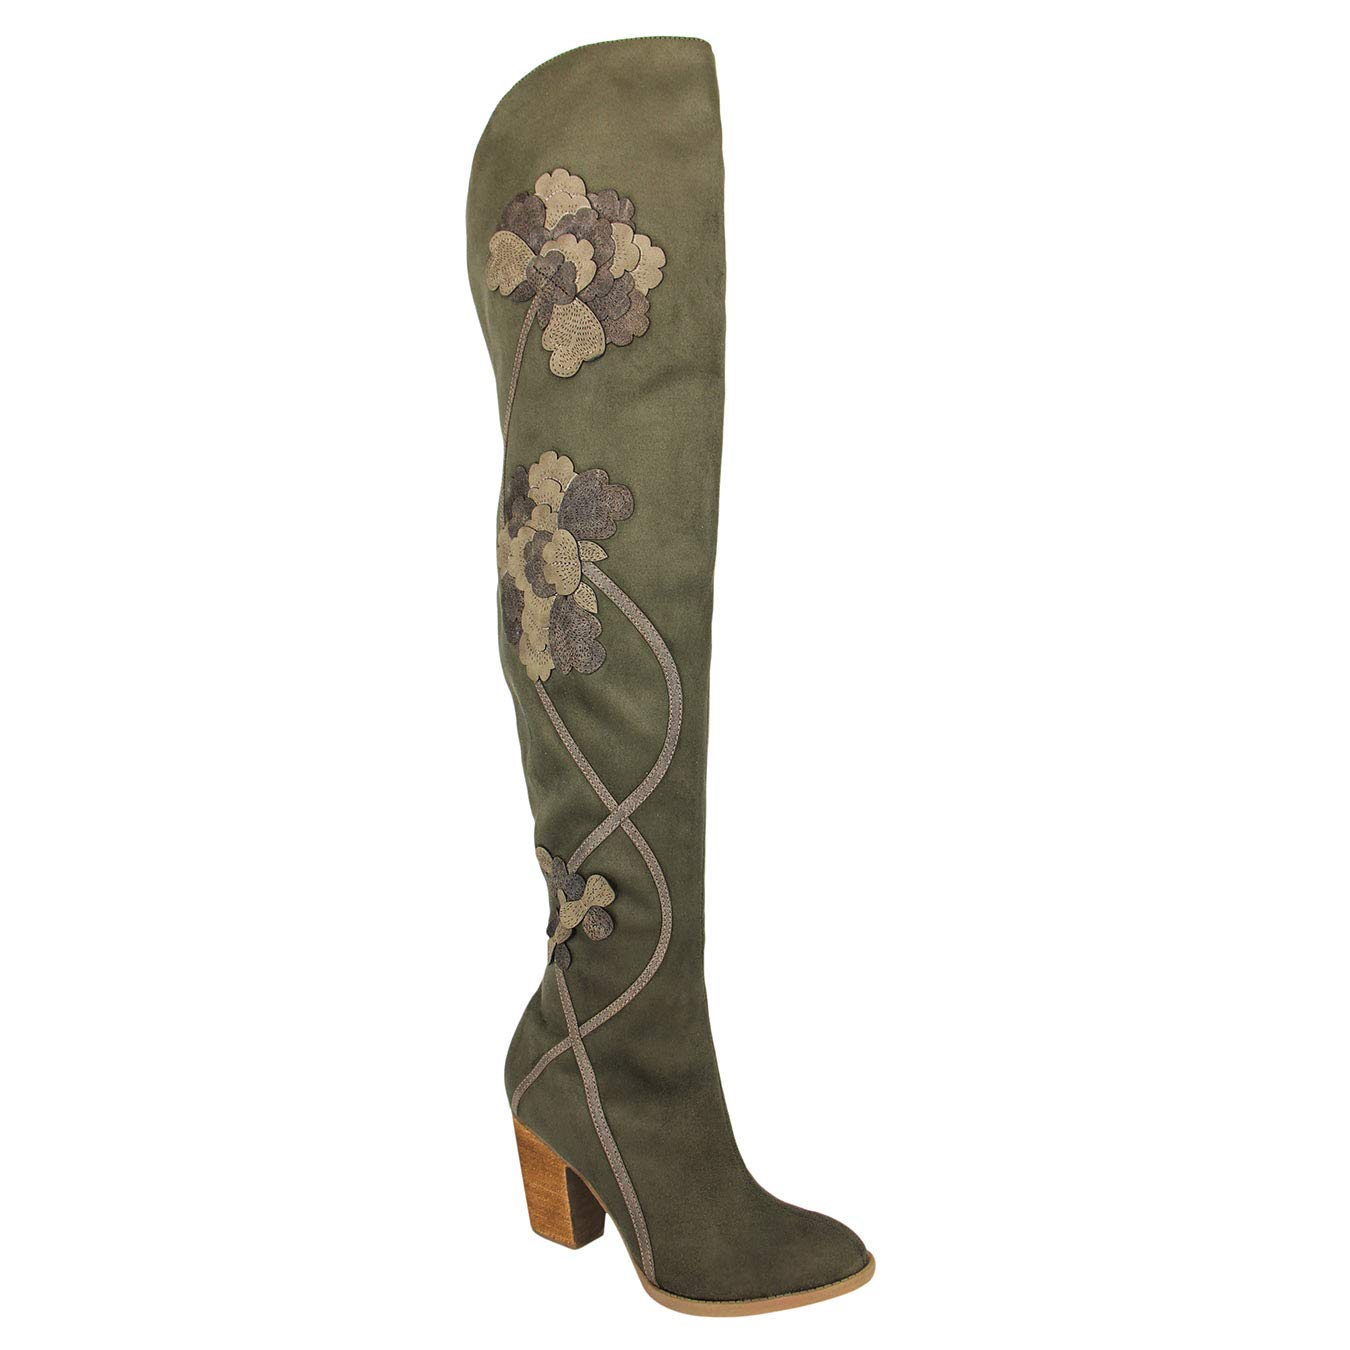 Not Rated Alexis Over The Knee High Heel Boot with Intricate Floral Detail